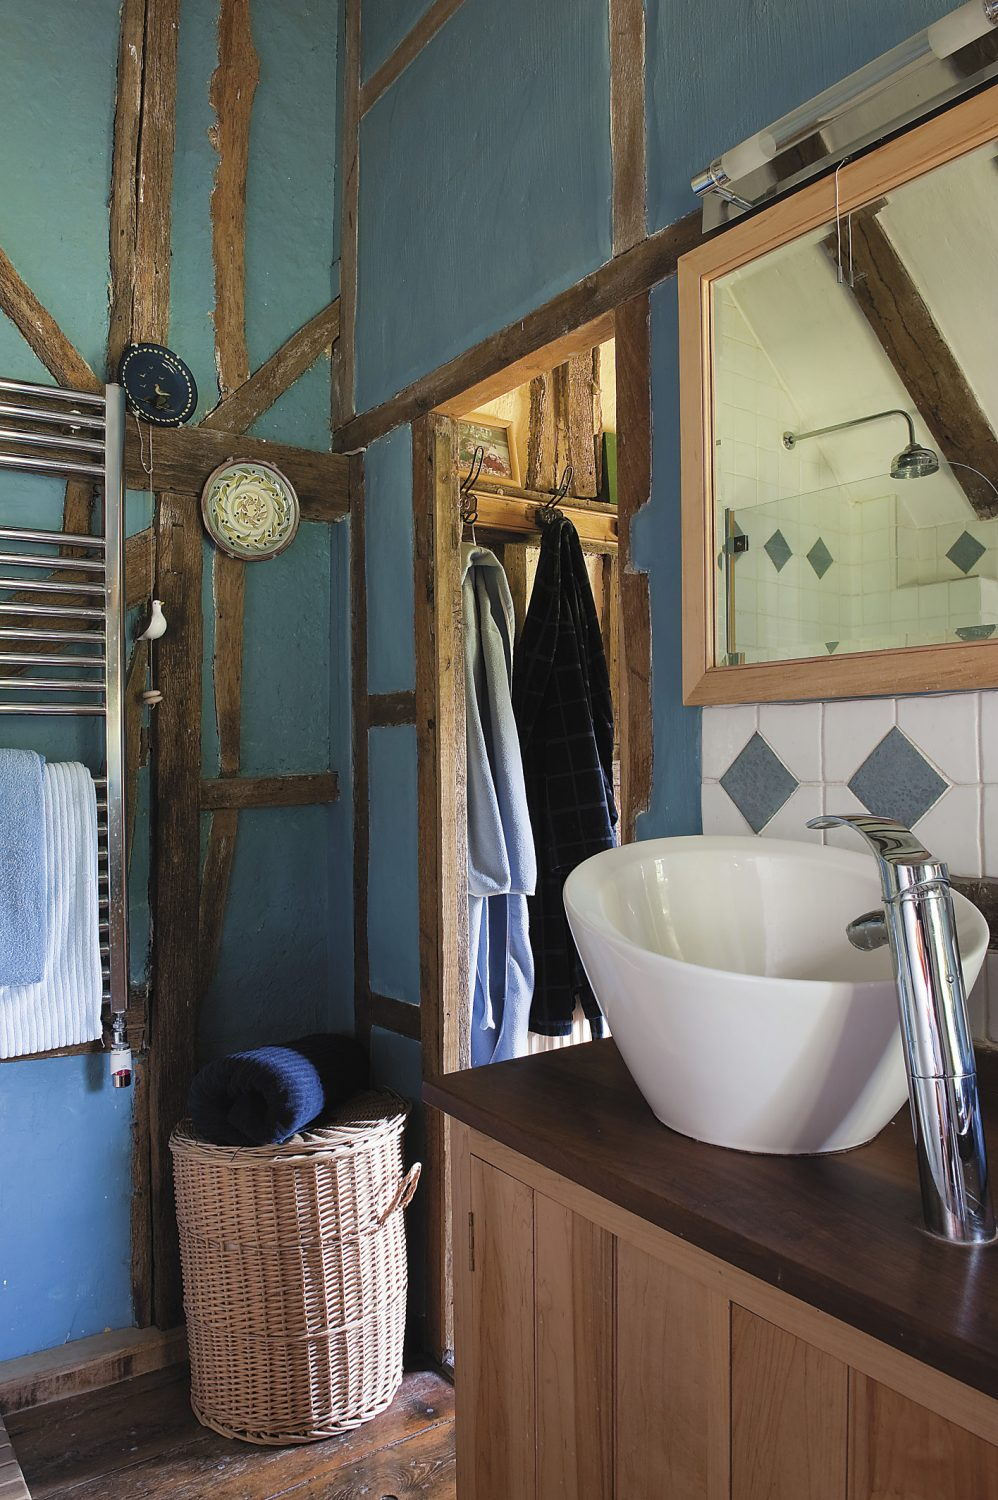 Christine again successfully mixes modern comforts with traditional charm in the en suite bathroom